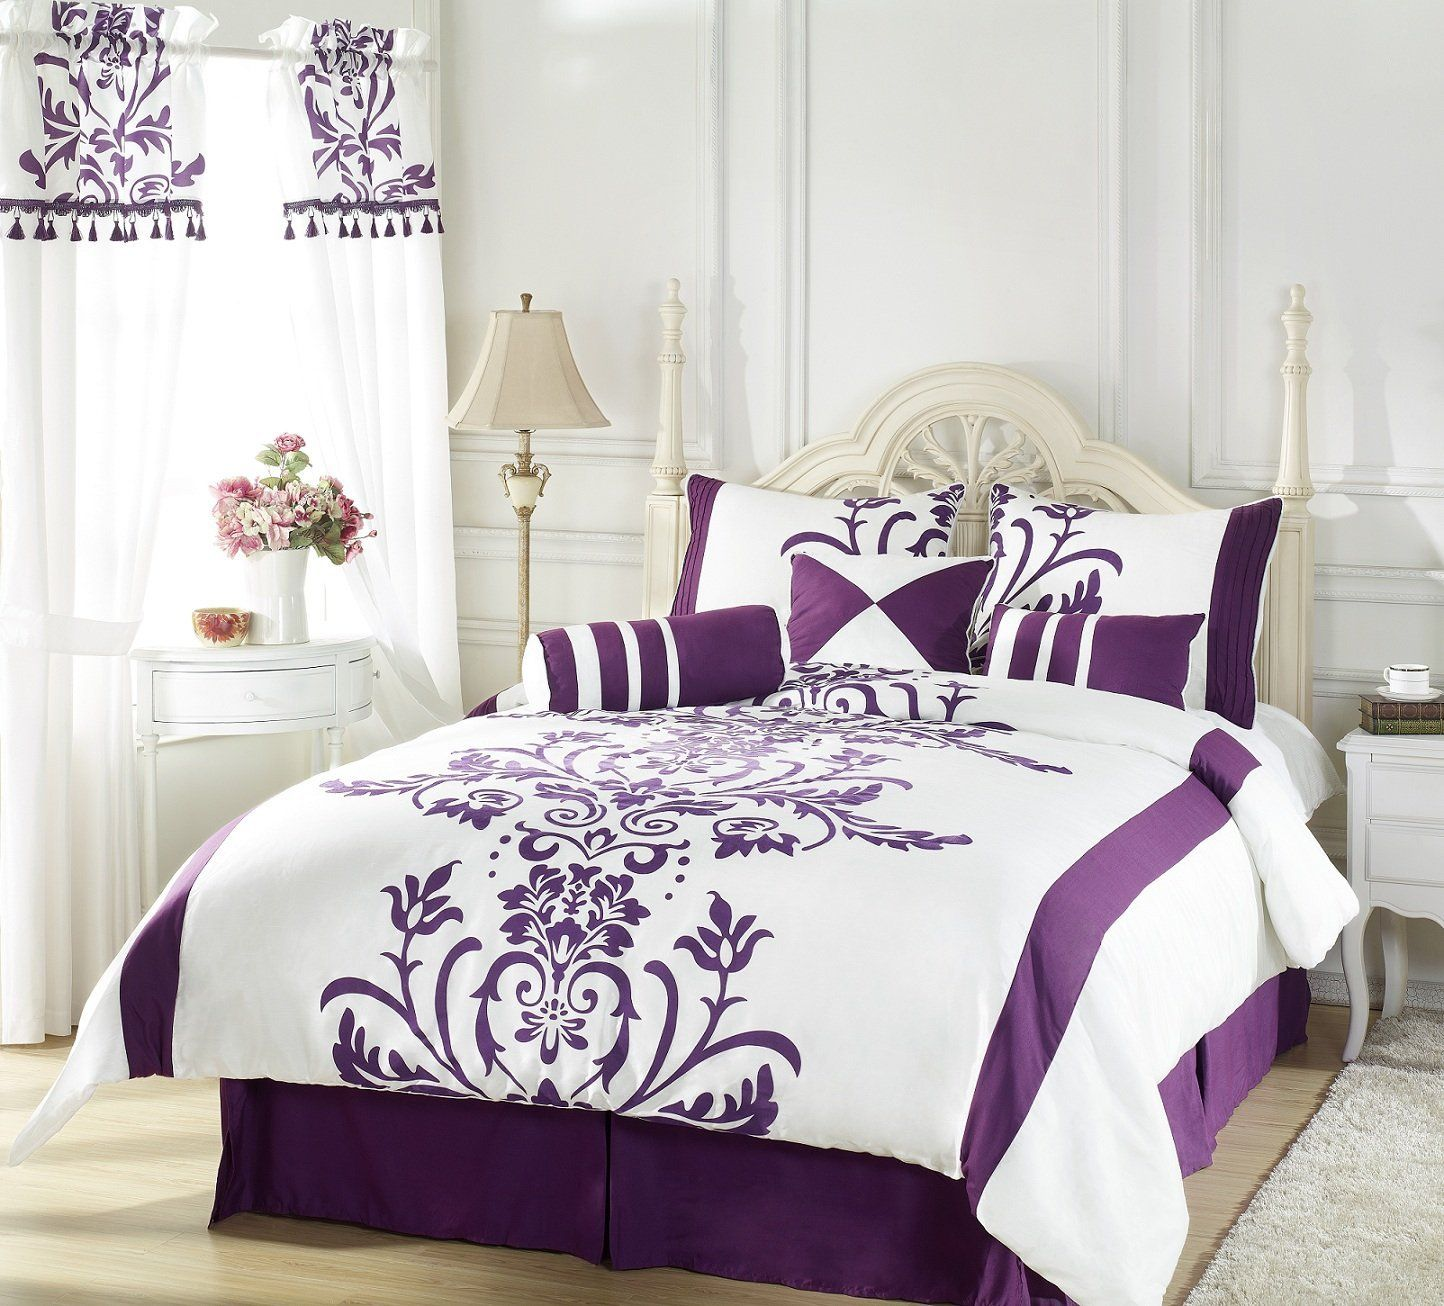 Chezmoi Collection 7 Piece White With Purple Floral Flocking Comforter 90  Inch By 92 Inch Set Bed In A Bag For Queen Size Bedding Machine Washable 9